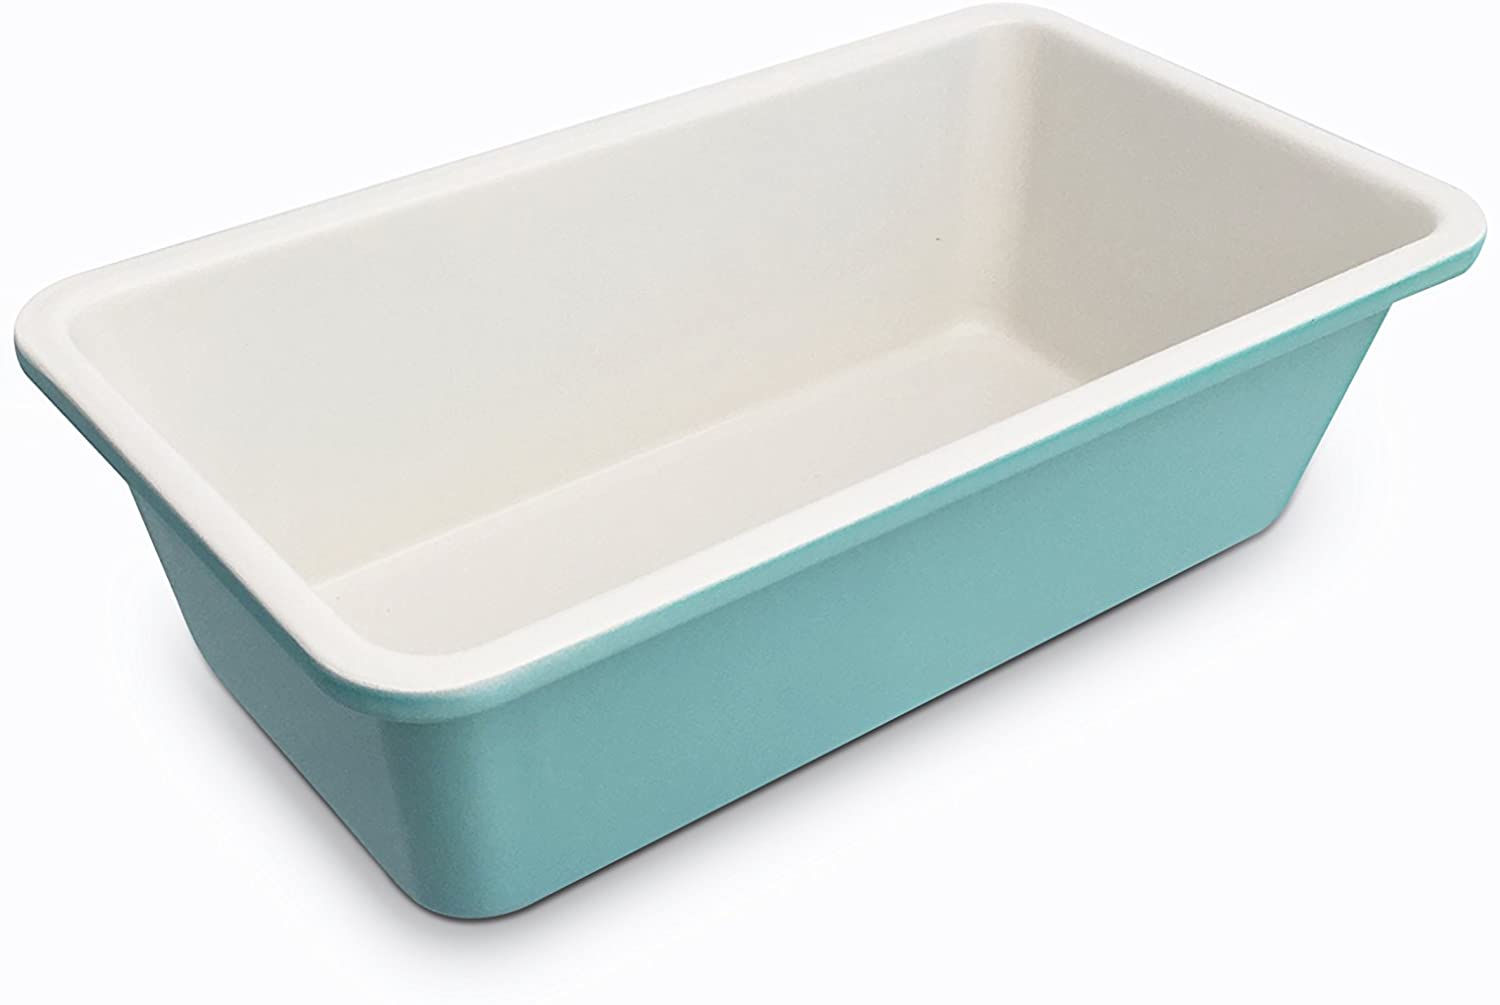 GreenLife Ceramic Non-Stick Loaf Pan, Turquoise -